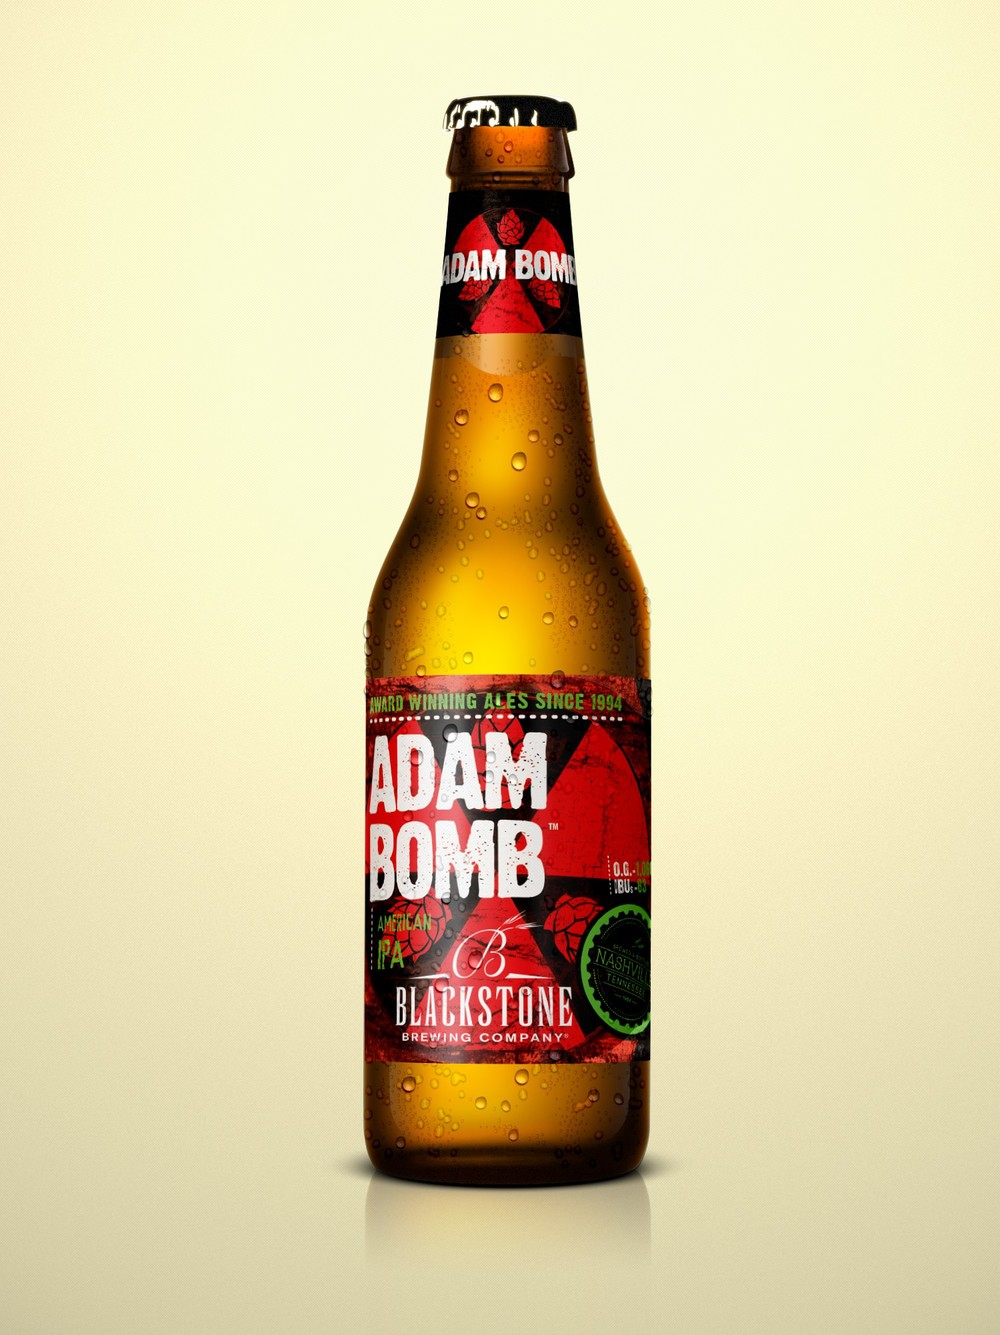 Blackstone Brewing Company Adam Bomb Bottle Label